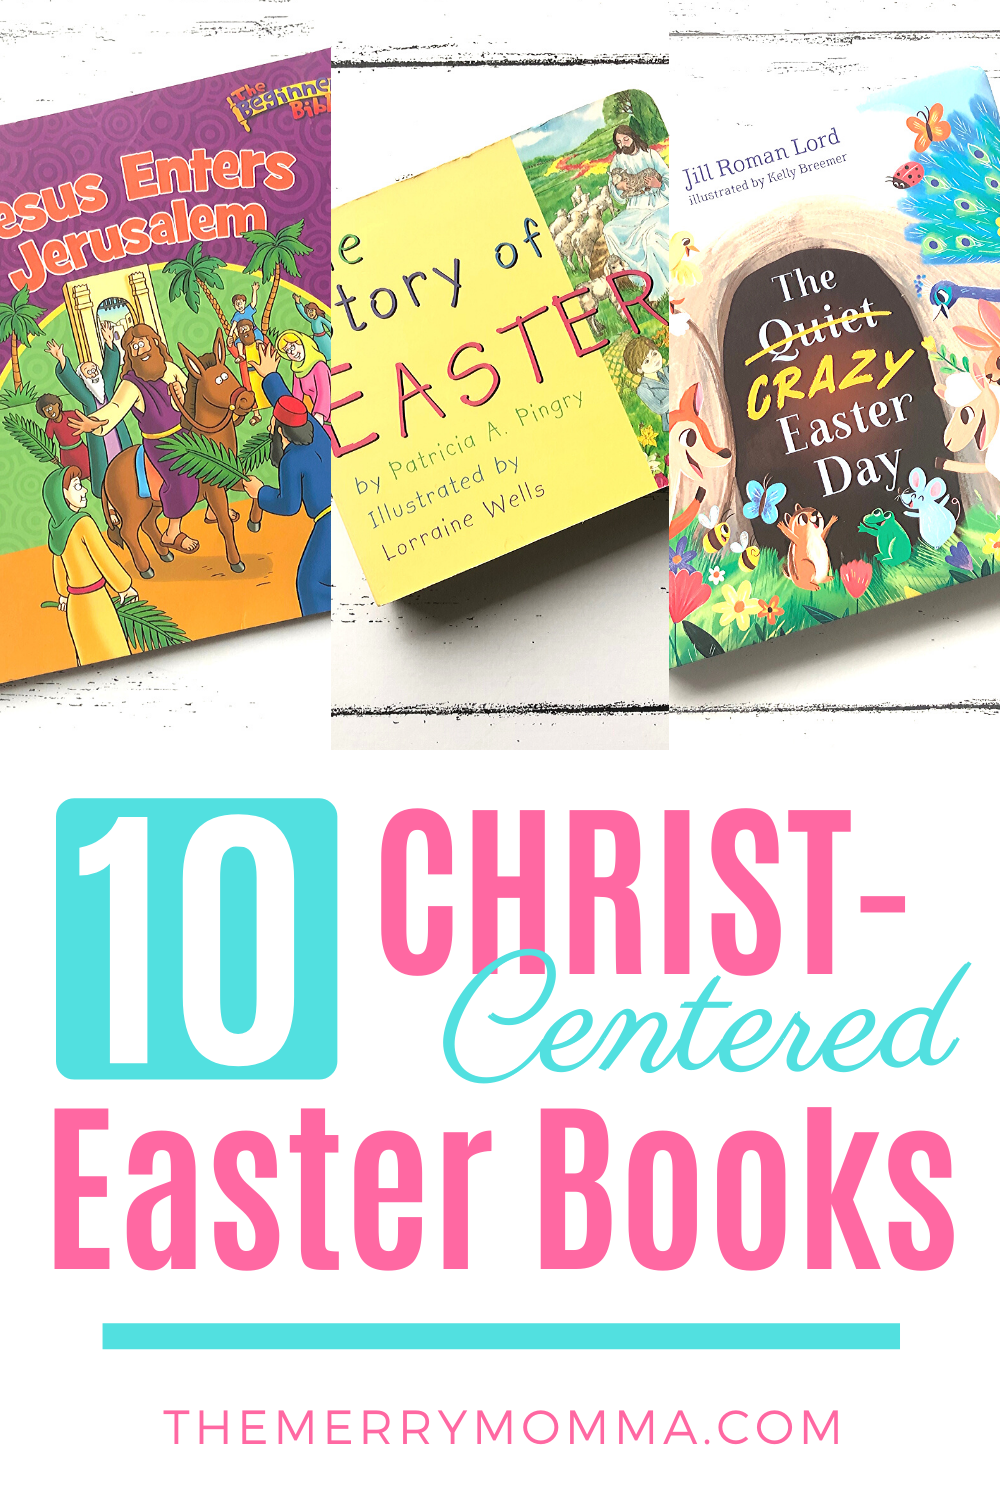 10 Christ-Centered Easter Books